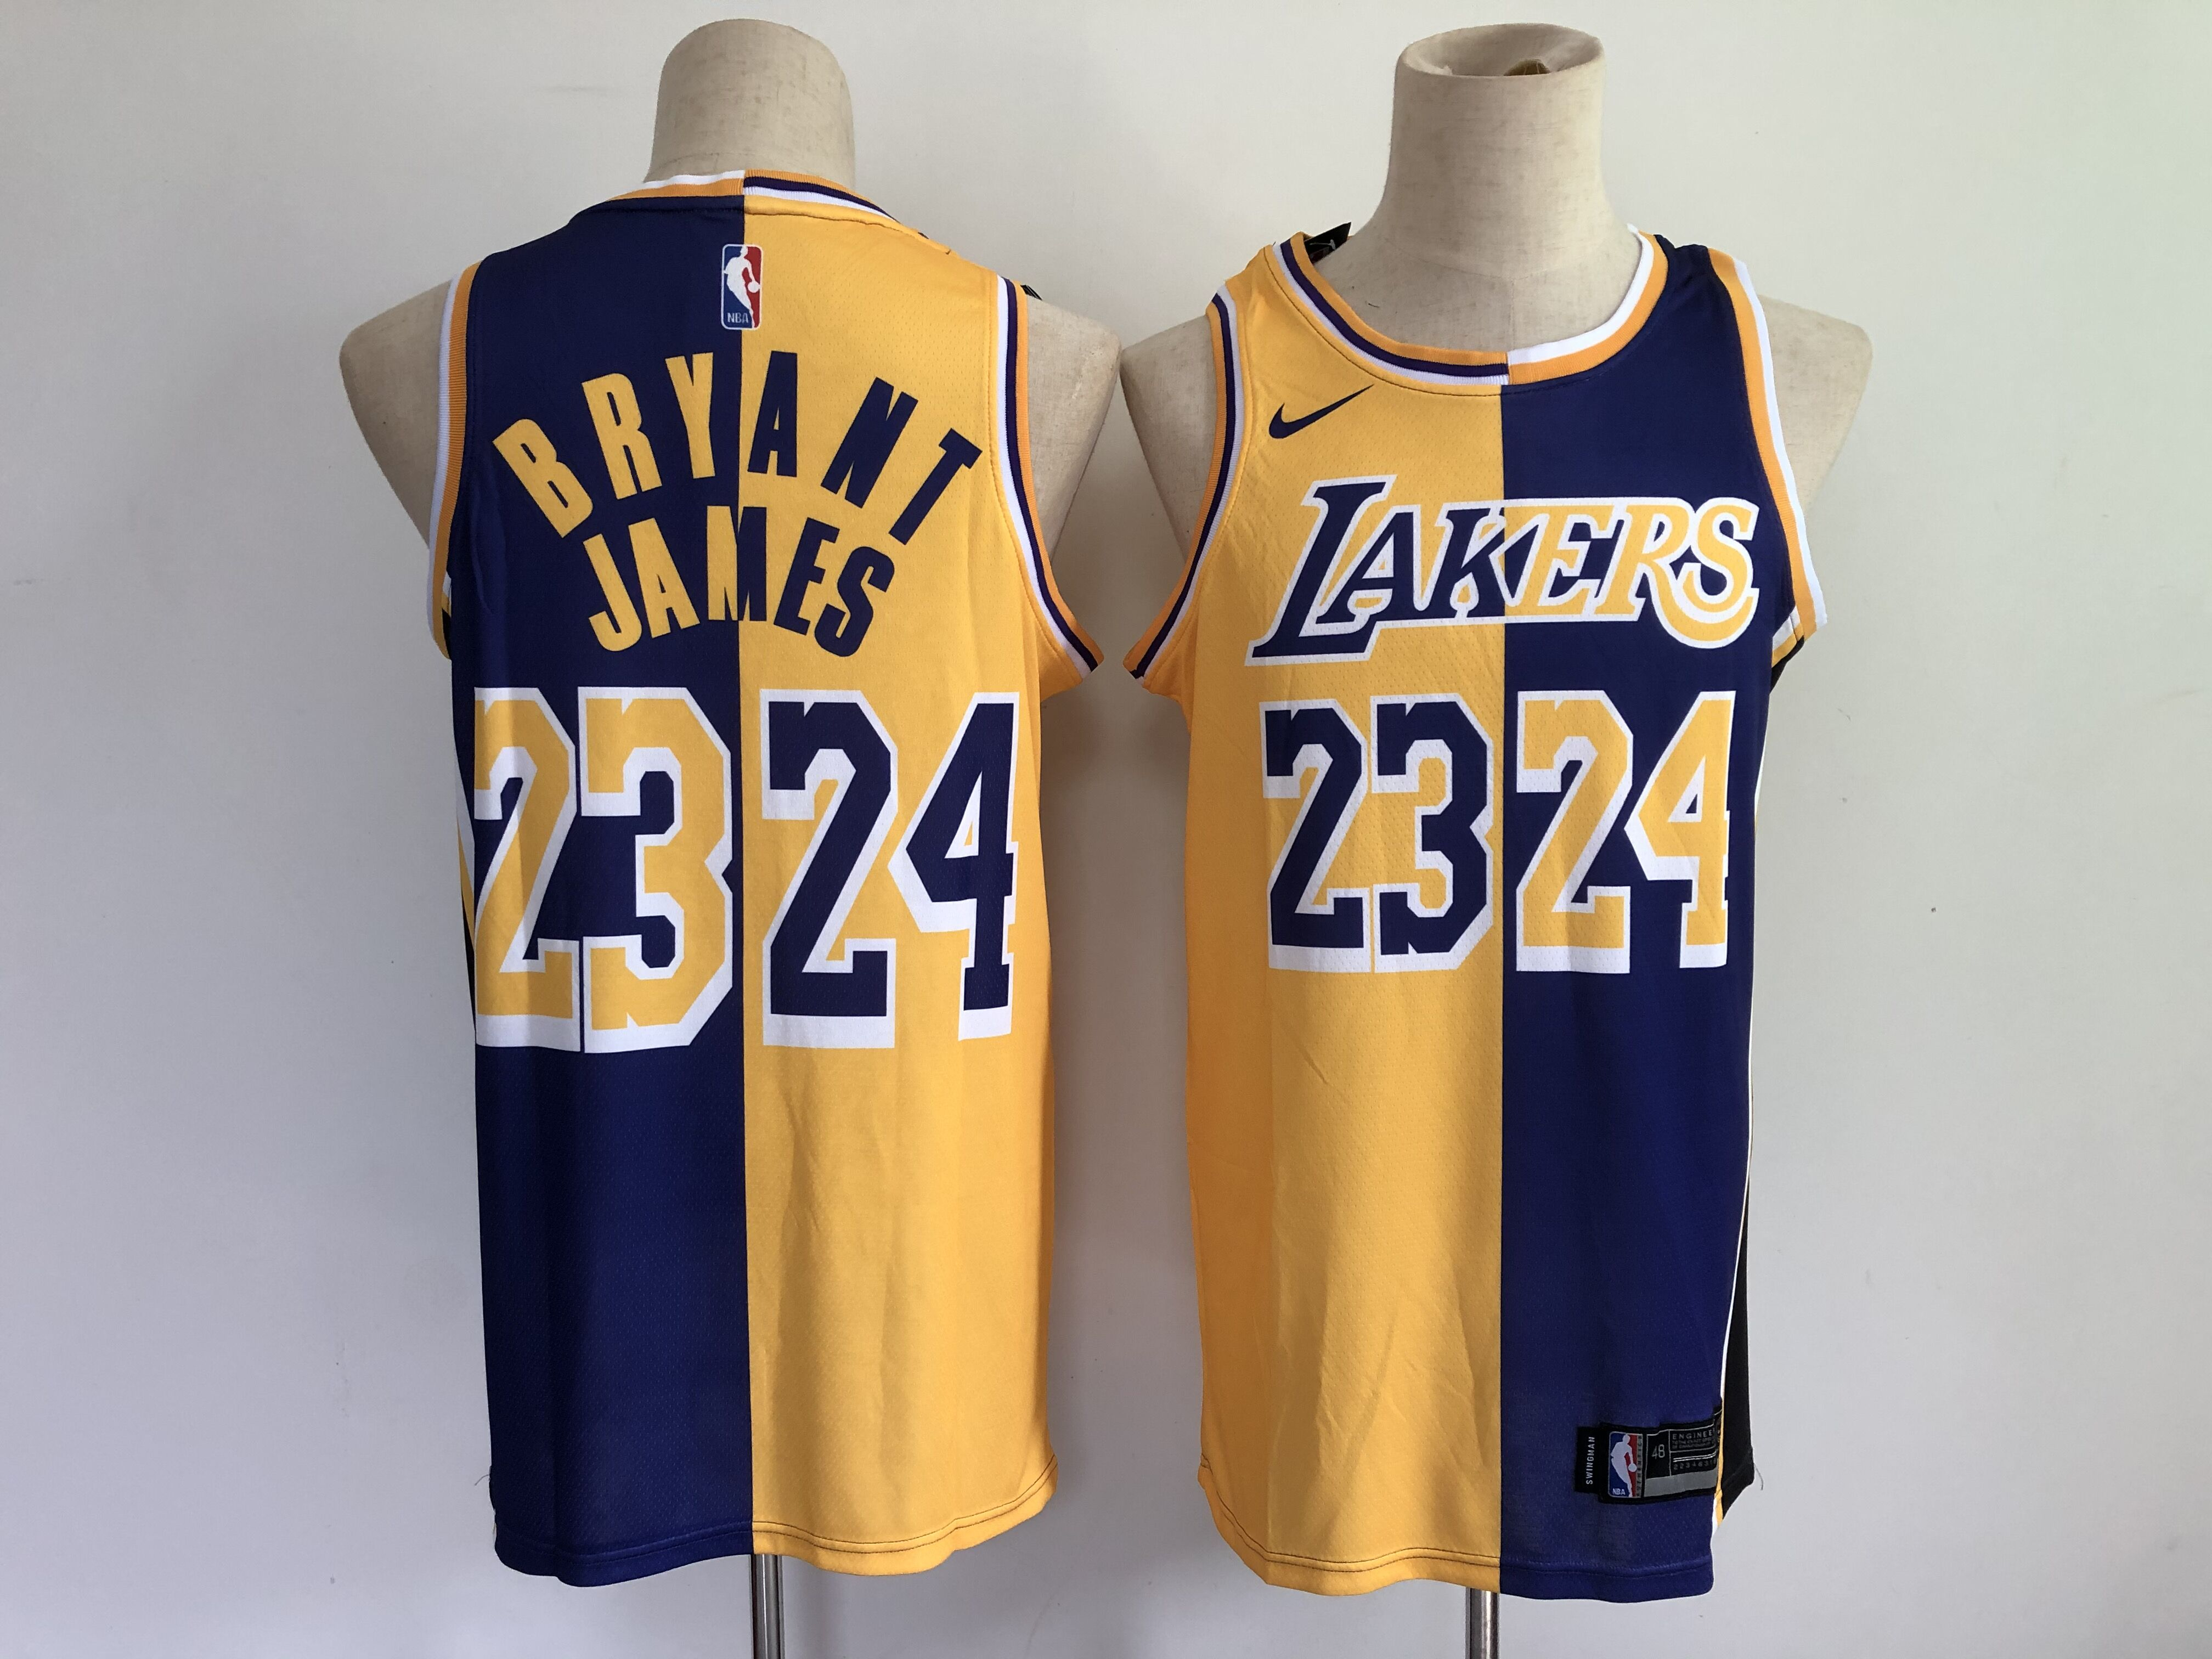 Wholesale 2021 Men Los Angeles Lakers 23 James purple gold kobe bryant split special mamba and la king jersey